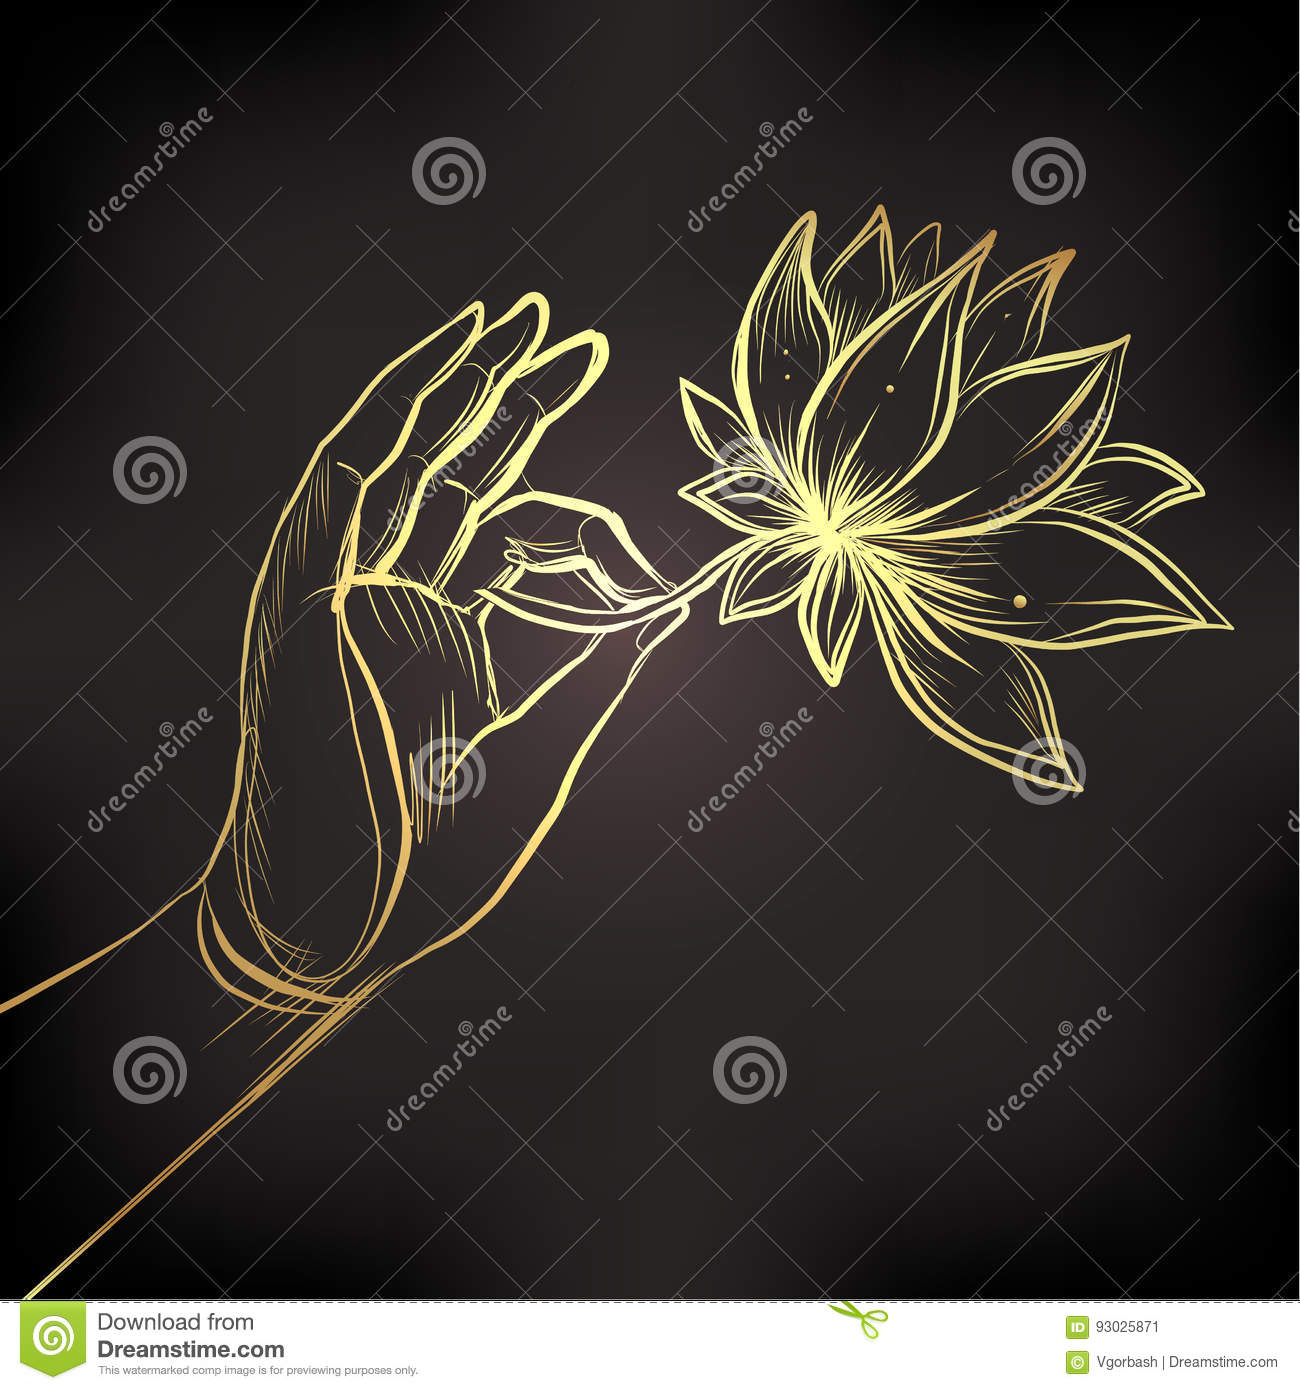 Lord buddhas hand holding lotus flower vector illustration of lord buddha s hand holding lotus flower vector illustration of izmirmasajfo